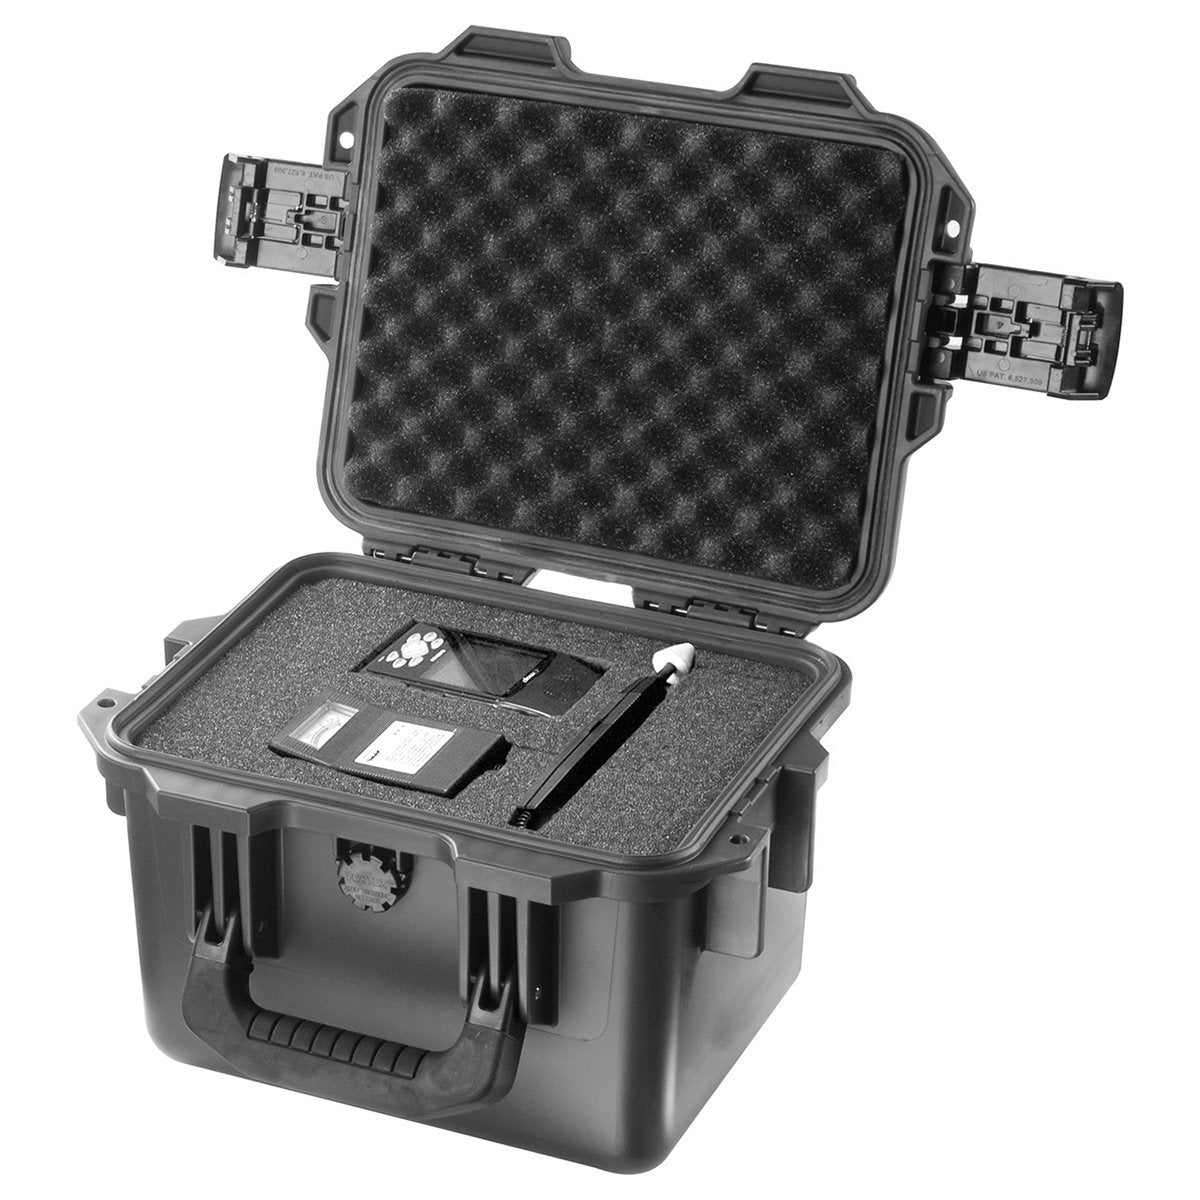 Peli Case iM2075 Storm Small Case with Foam | UKMCPro